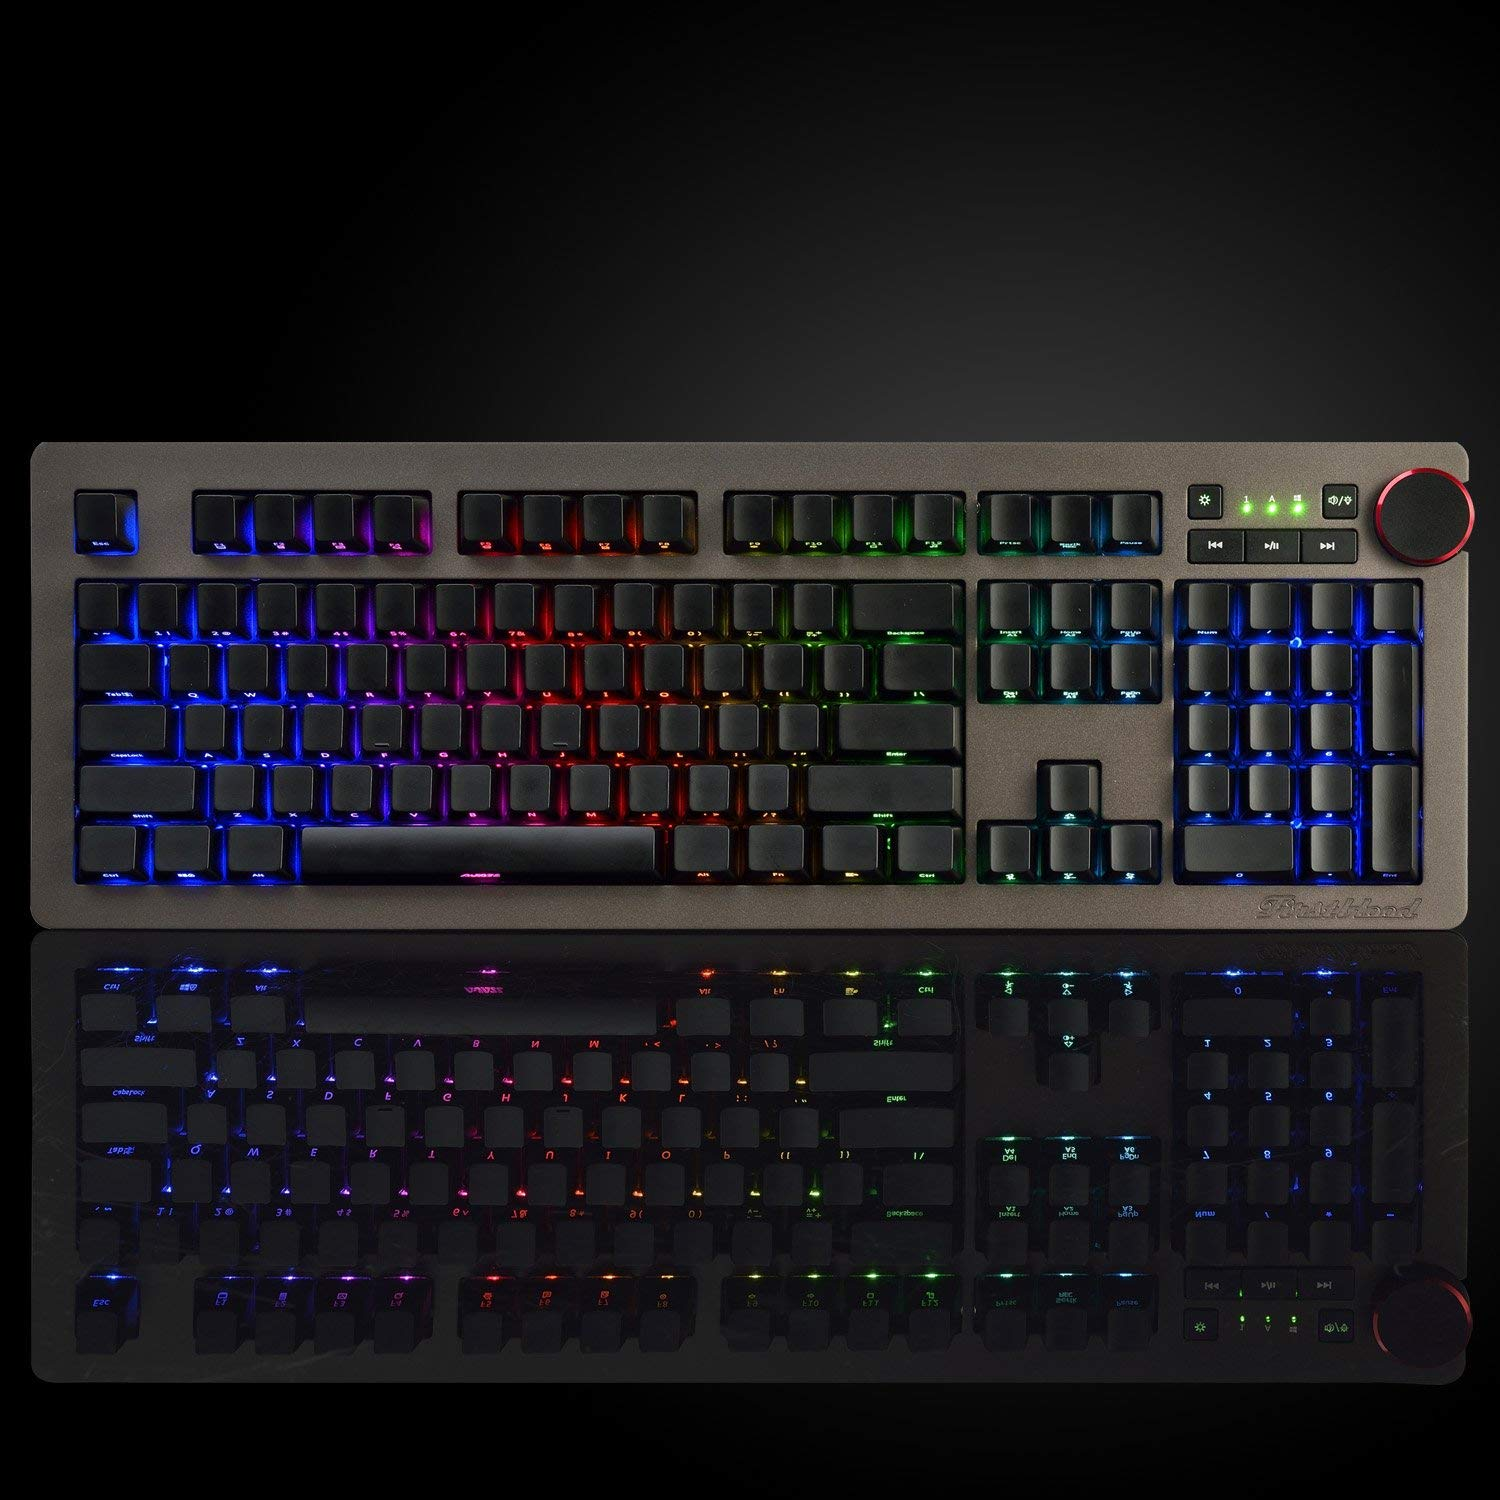 Ajazz Halo AK60 Side Carving RGB Mechanical Keyboard with Blue Switches, Special Multimedia Knob Wired Backlit Gaming Keyboard, Black